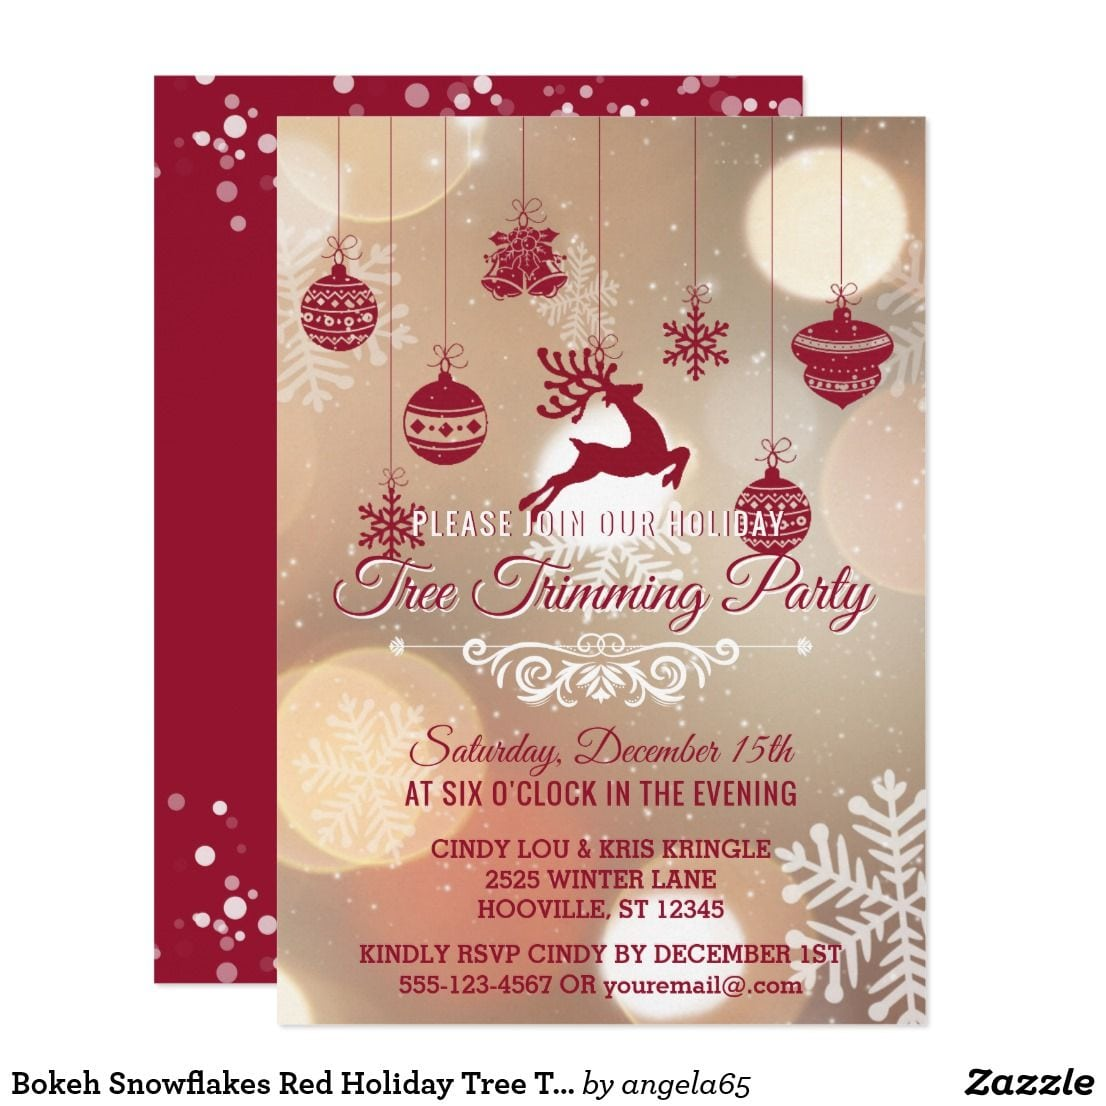 Bokeh Snowflakes Red Holiday Tree Trimming Party Card